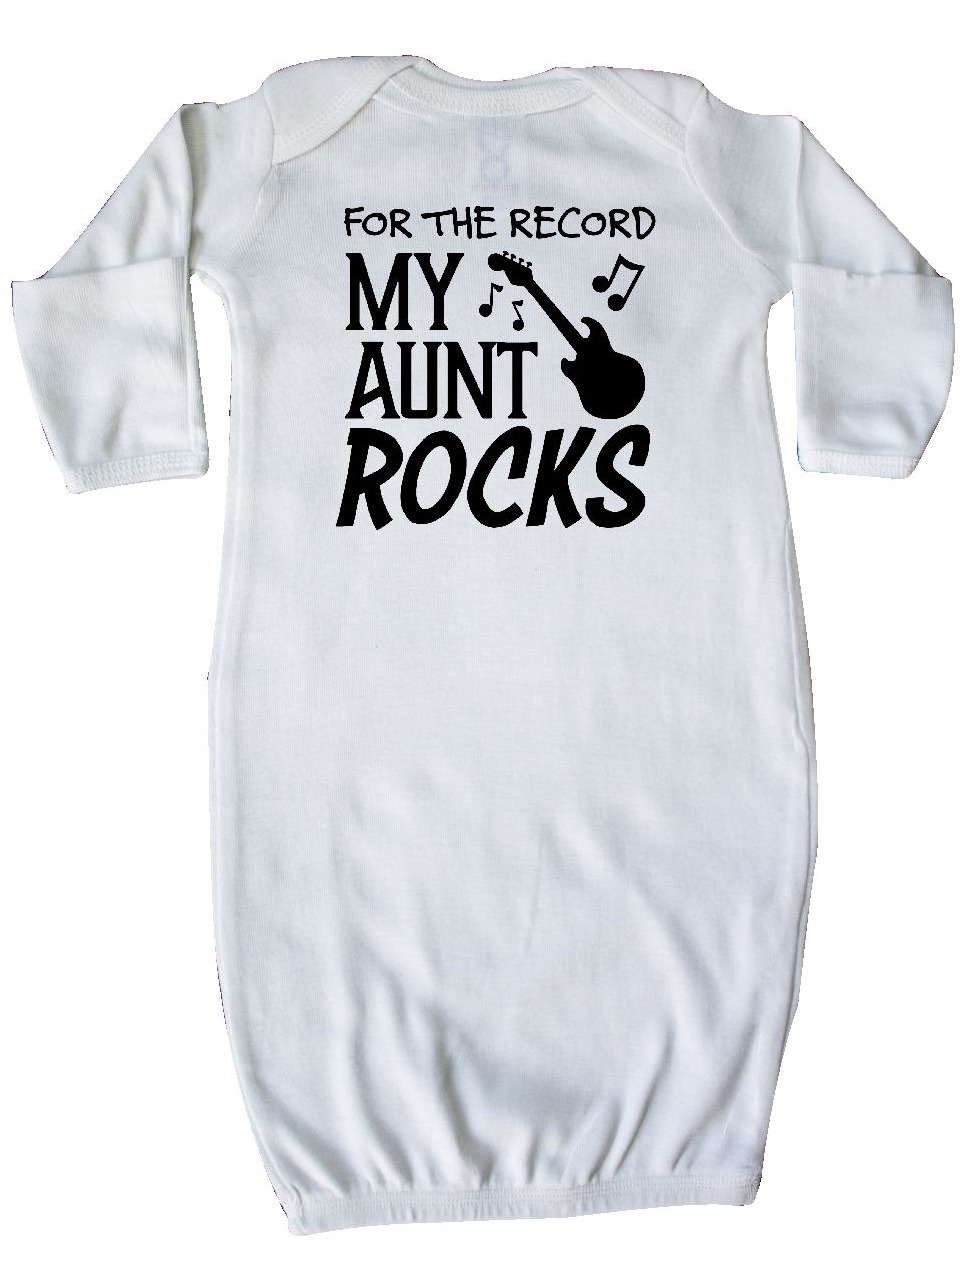 For the Record, My Aunt Rocks Newborn Layette